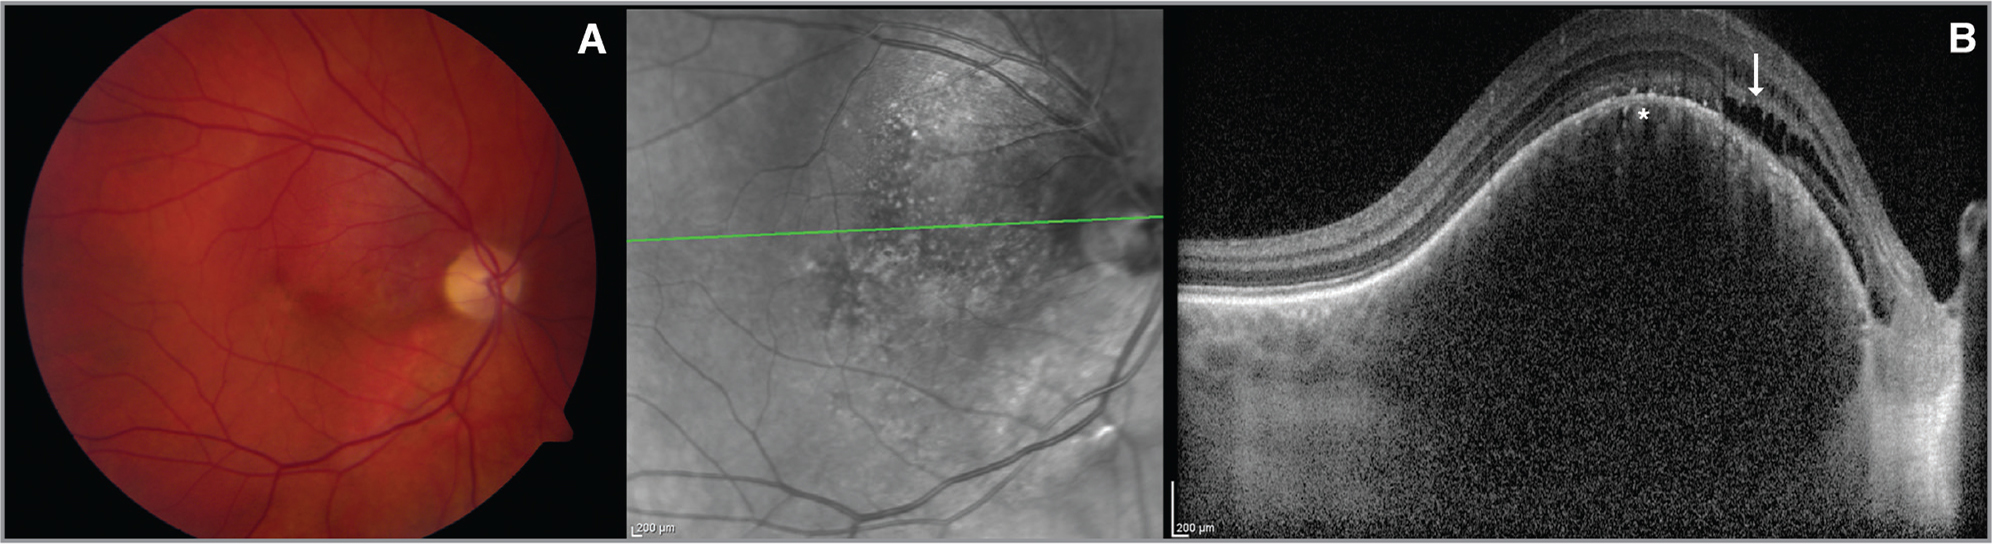 (A) A choroidal hemangioma on the macula. (B) On enhanced depth imaging optical coherence tomography, normal-looking honeycomb-like choriocapillaris (asterisk) with overlying retinal pigment epithelium, outer photoreceptor, and plexiform layer abnormalities are visible (arrow).